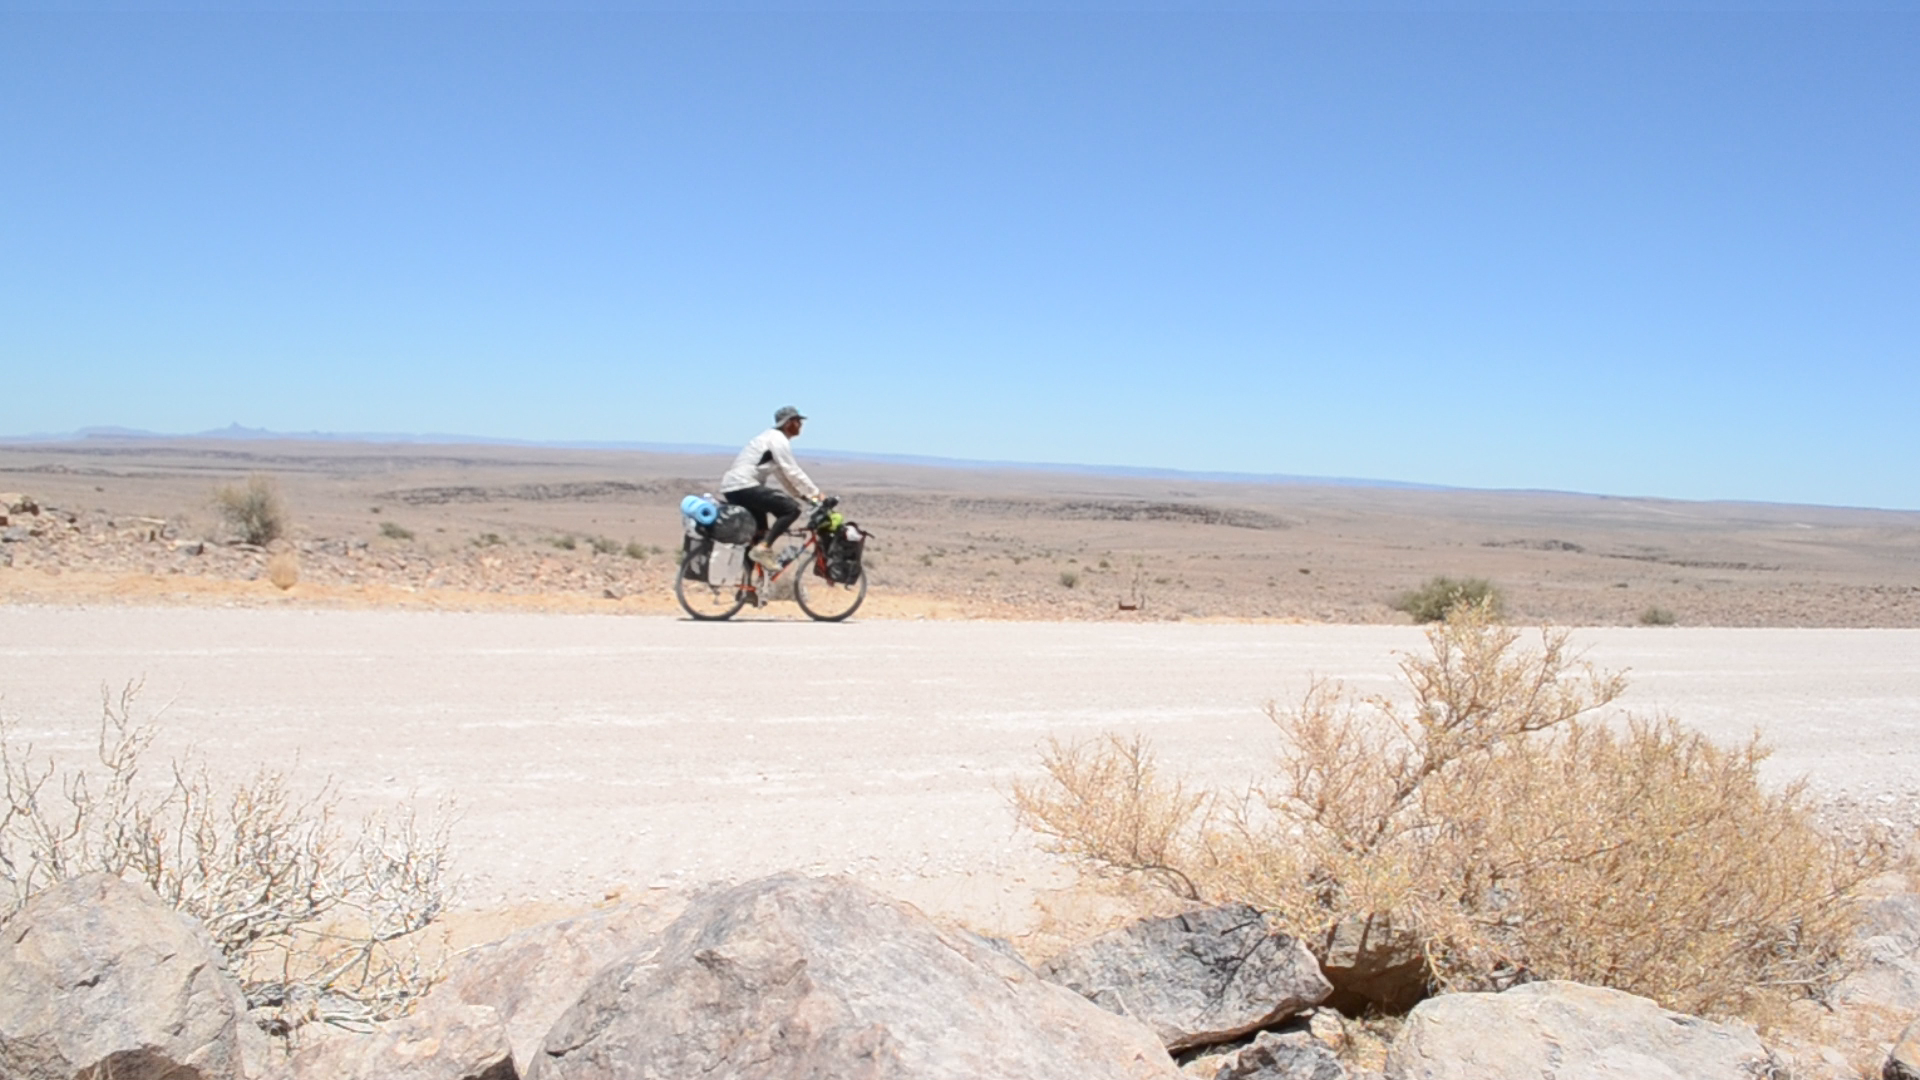 CYCLING SOLO ACROSS AFRICA